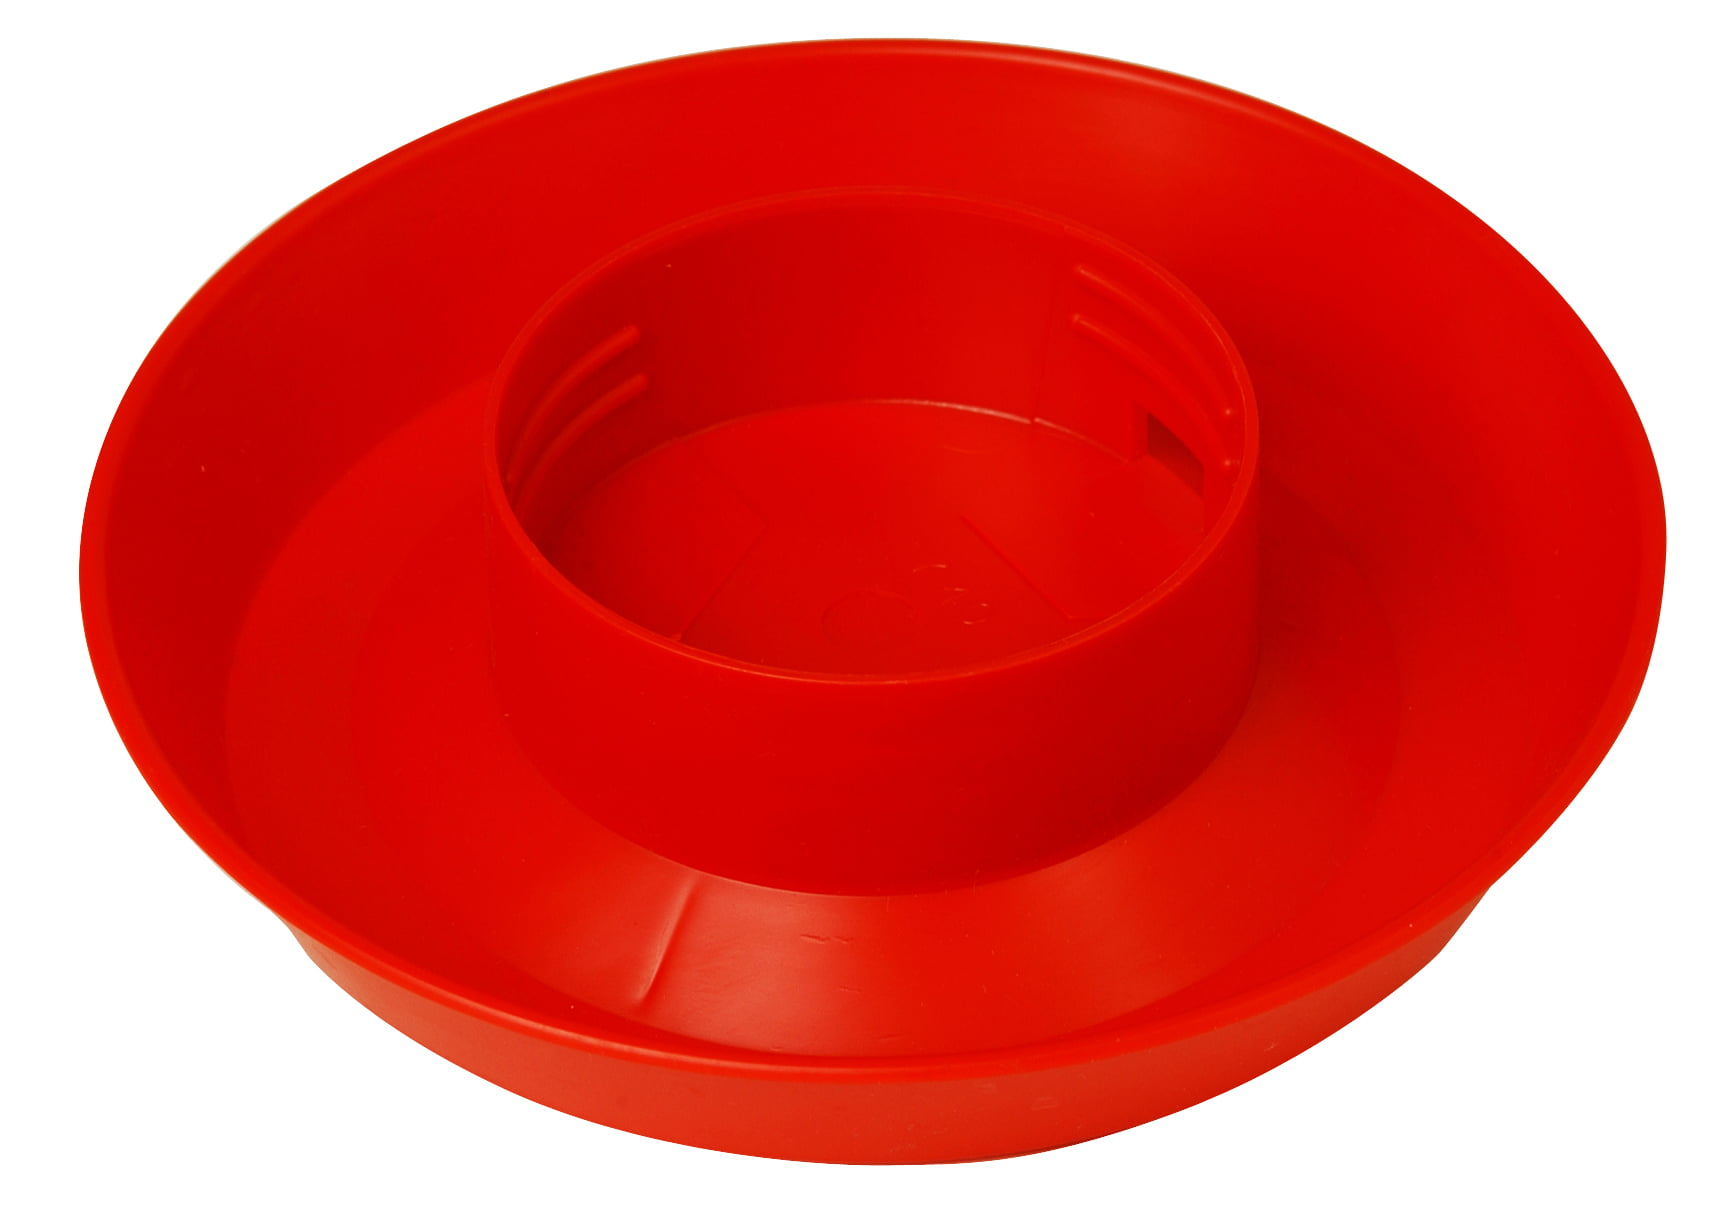 LITTLE GIANT SCREW-ON POULTRY WATERER BASE RED 1 QUART